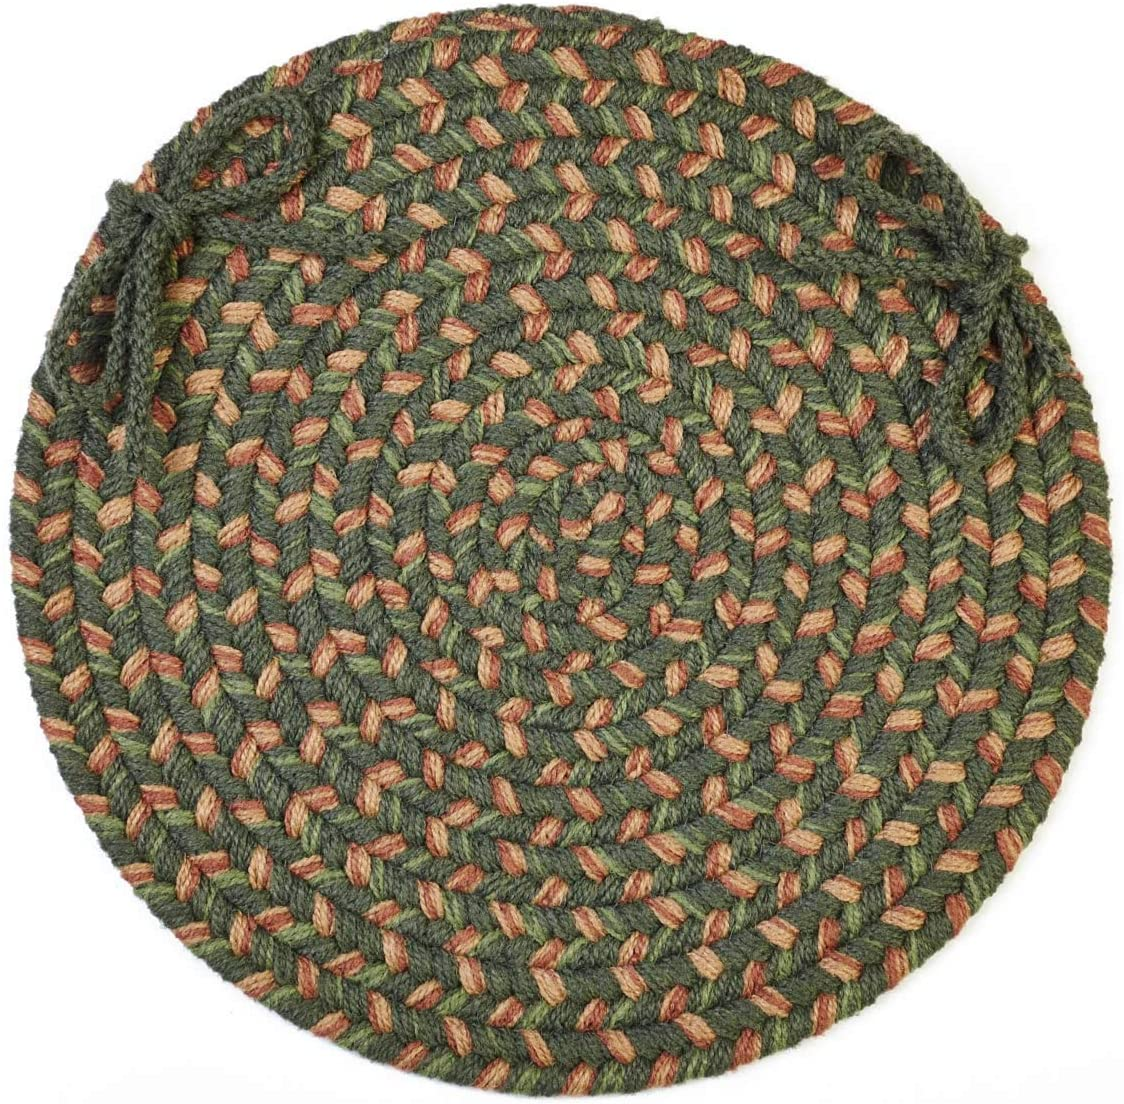 Super Area Rugs Hartford 5 ☆ popular Seattle Mall Chair Pad Cushion for Kitch Seat Dining